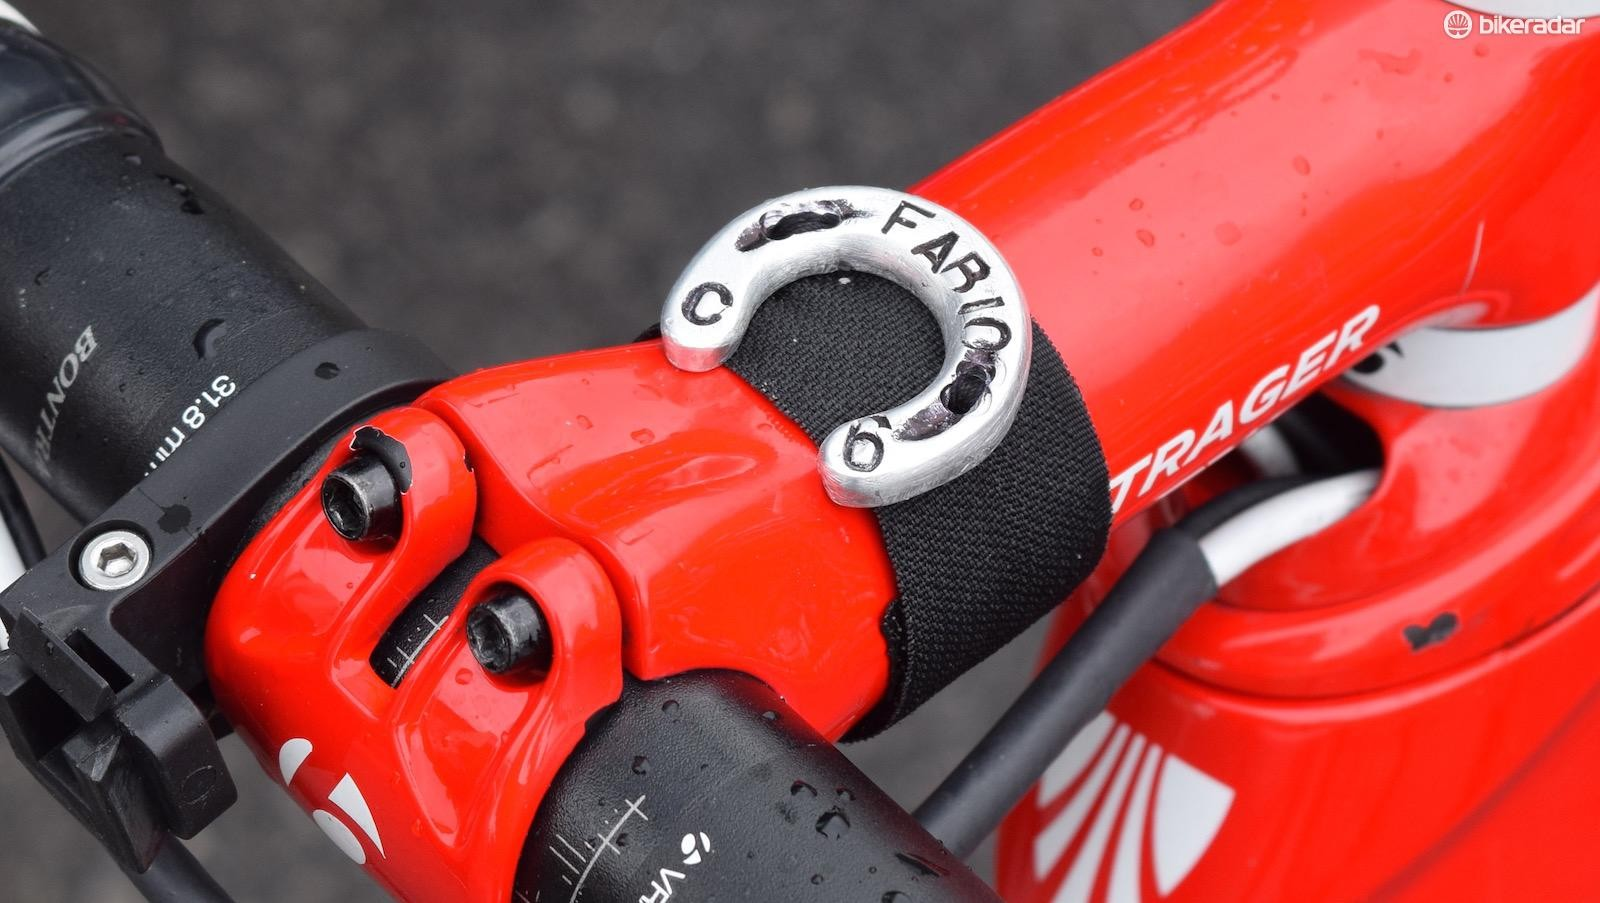 Early race leader Fabio Felline has a lucky horseshoe on his stem